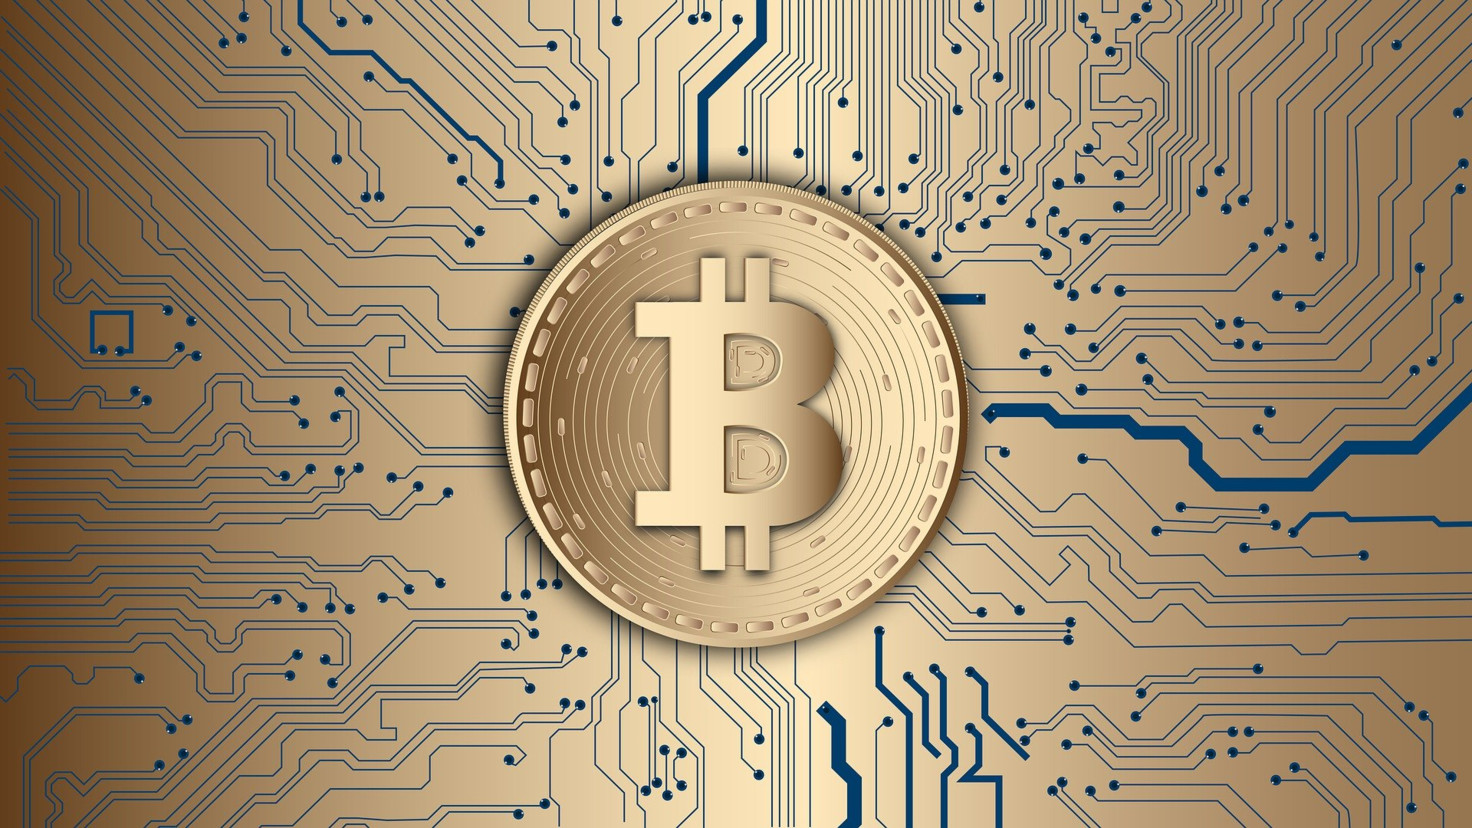 Bitcoin prediction this week February 10: the price Bitcoin is likely to enter a minor correction